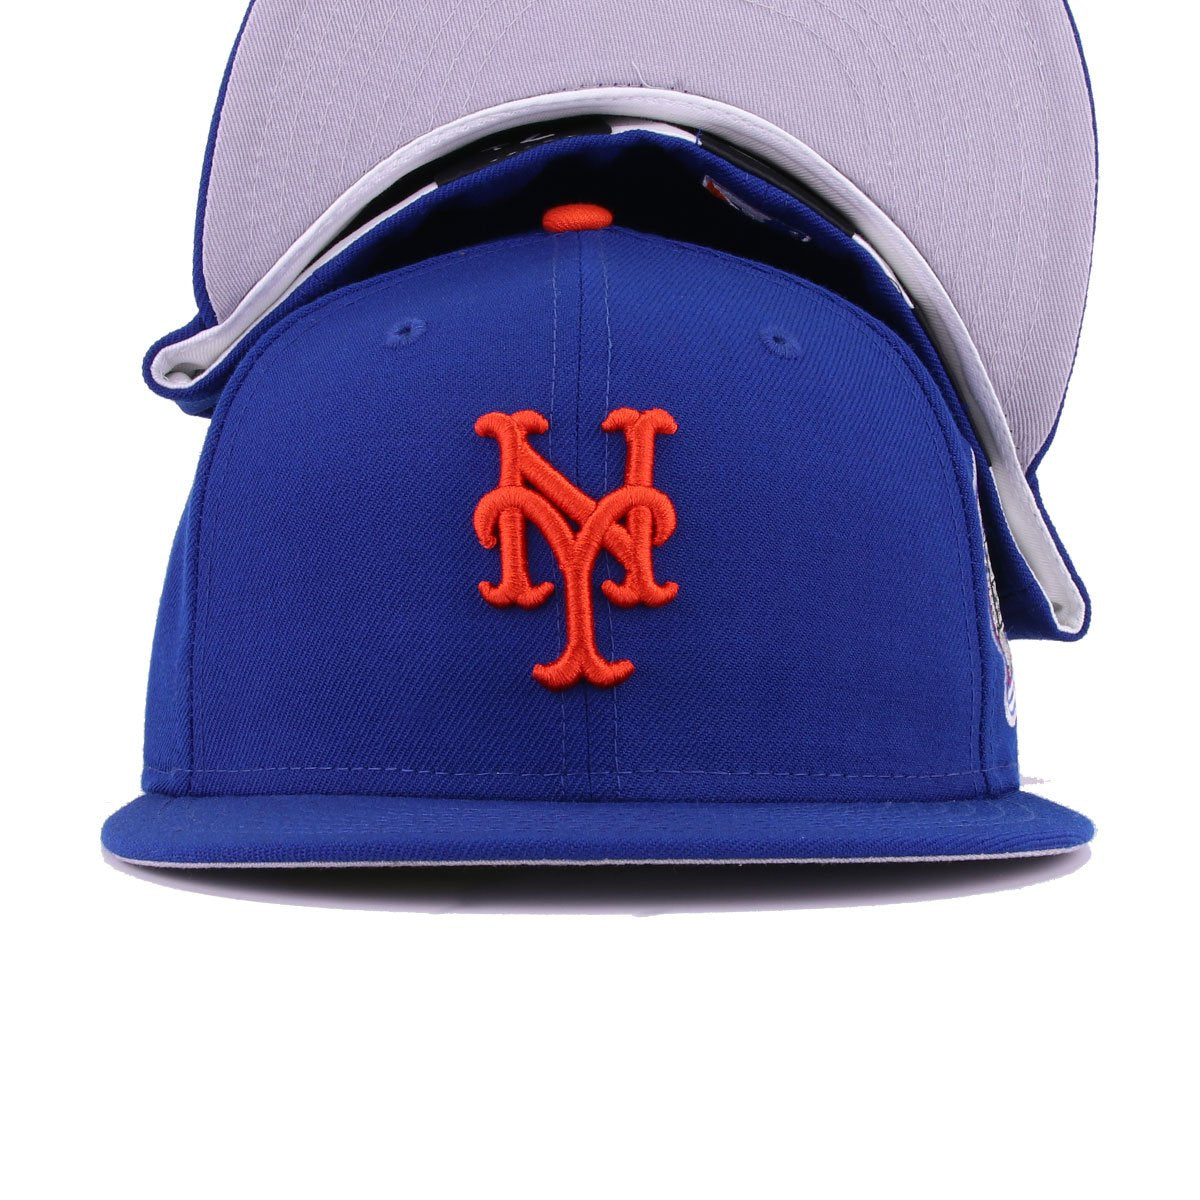 New York Mets Light Royal Blue Orangeade Subway Series 2000 World Series New Era 59Fifty Fitted